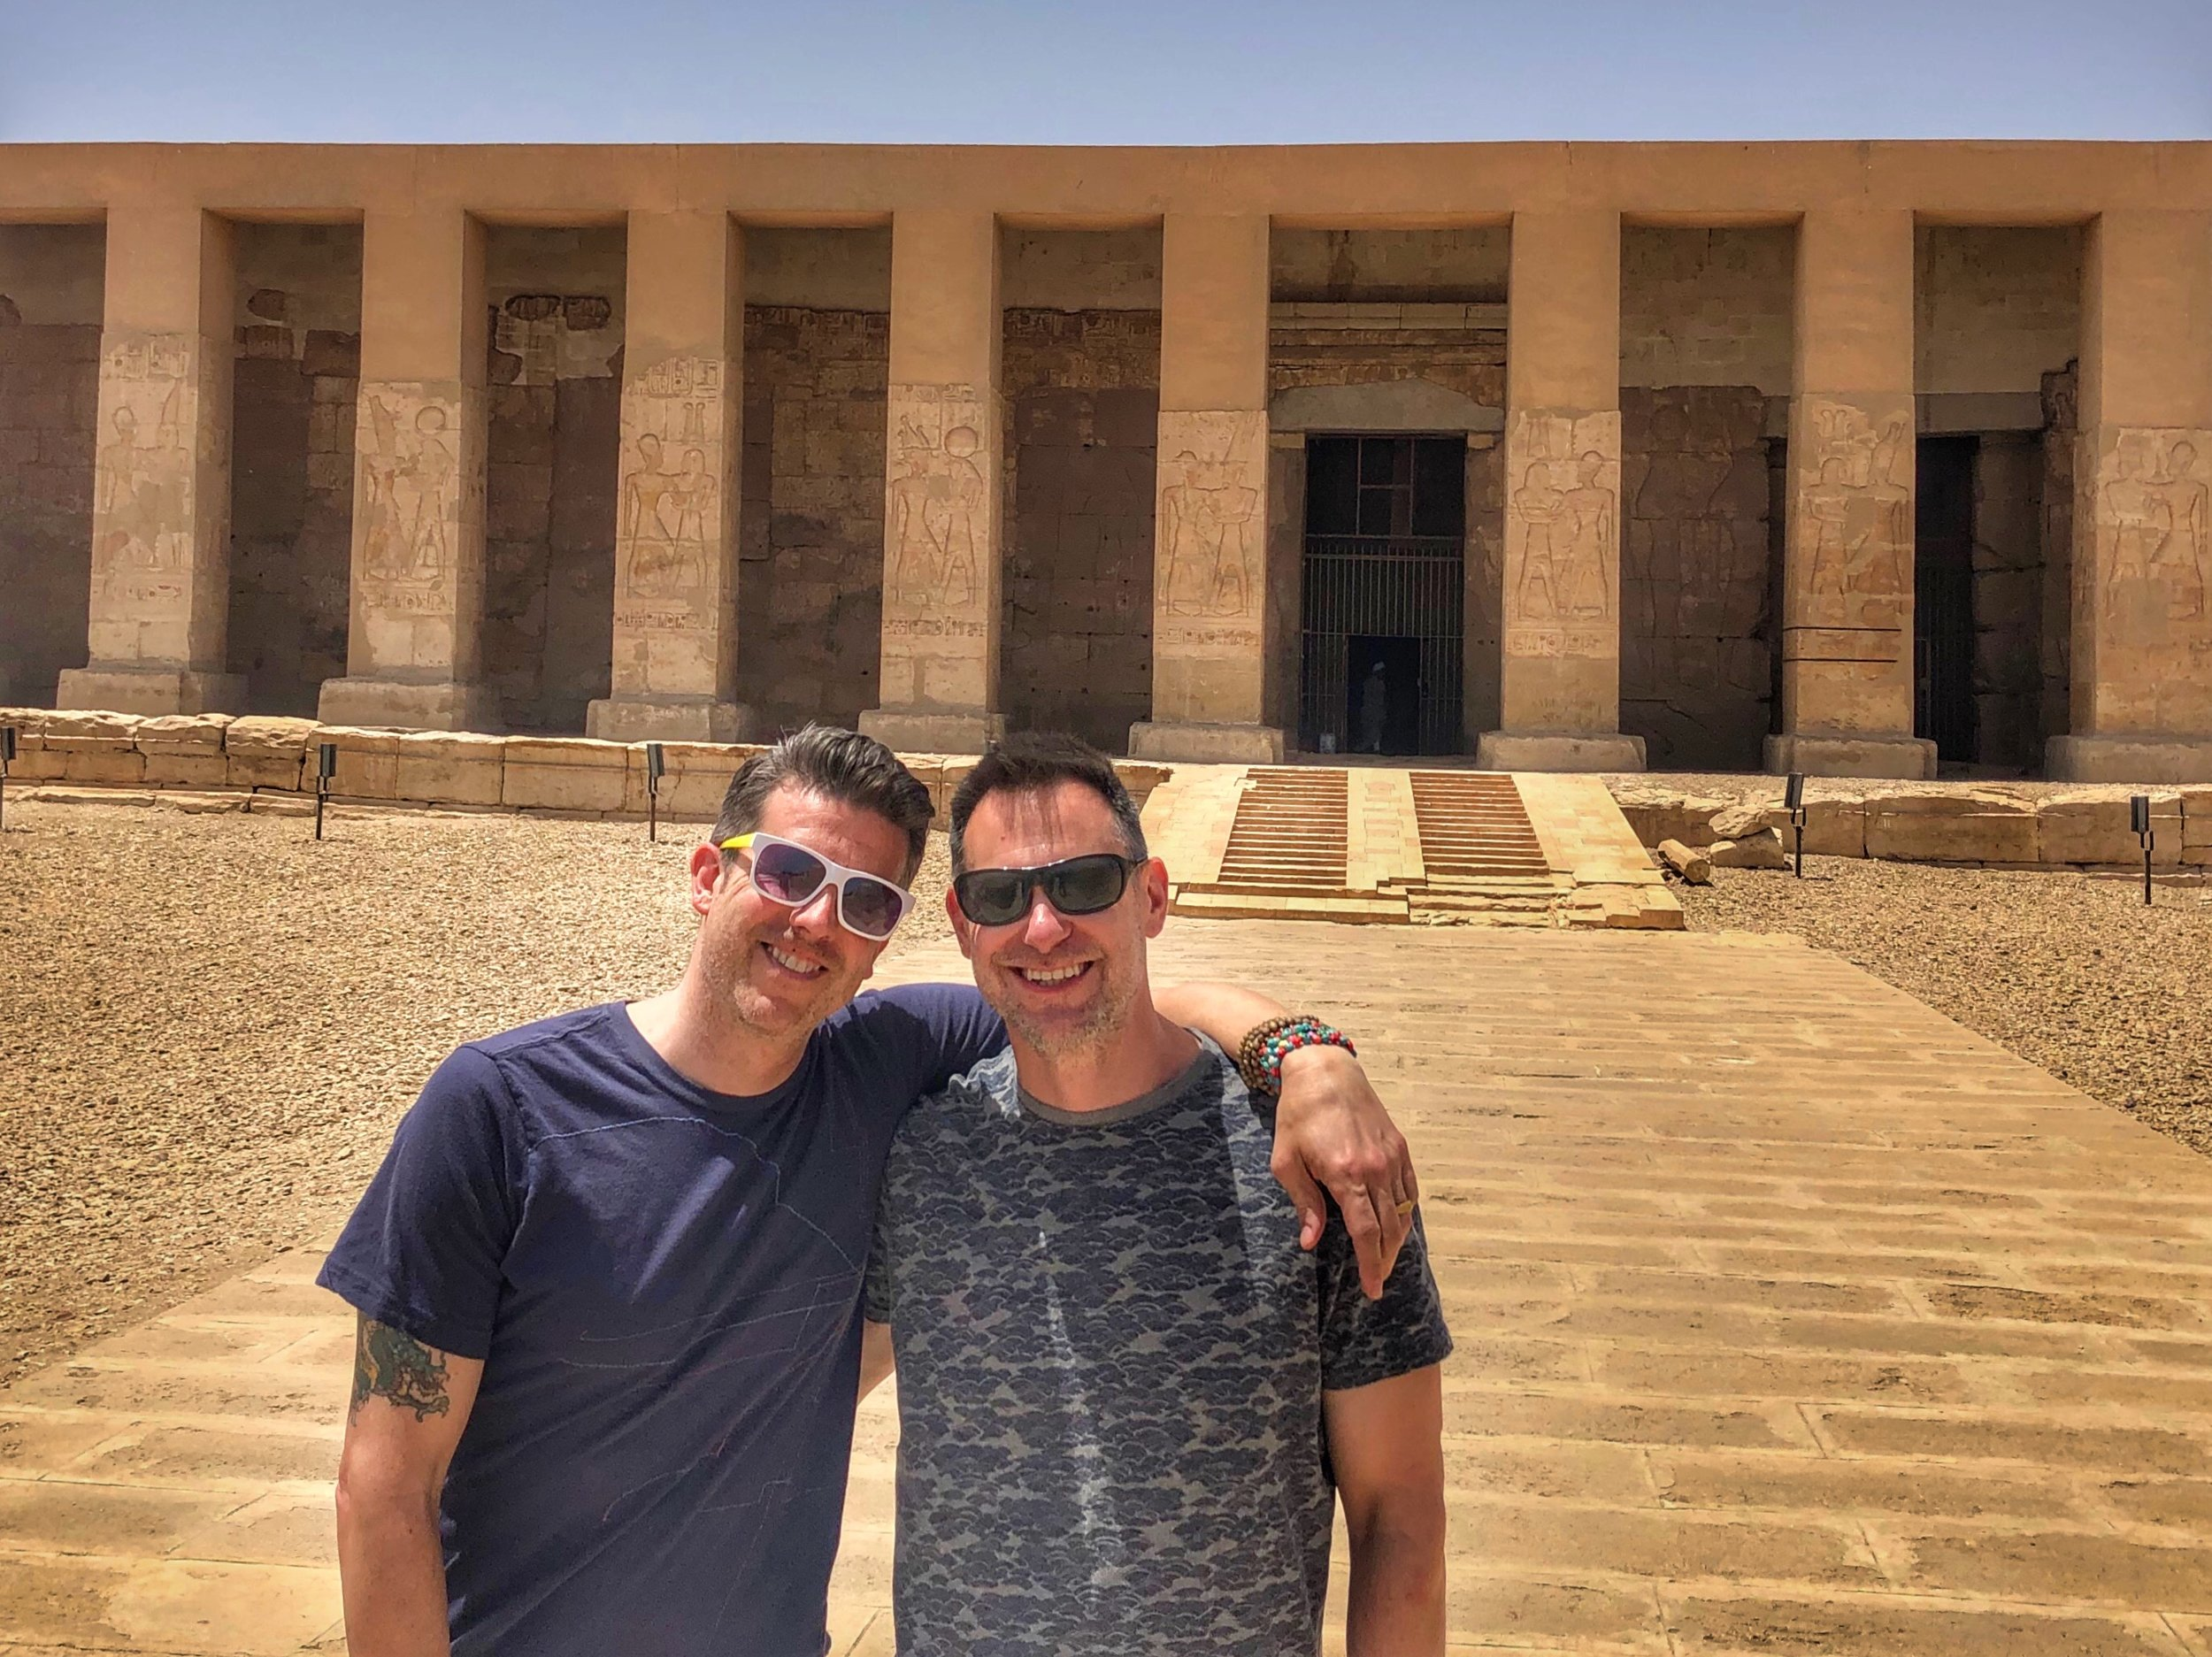 Wally and Duke highly recommend adding Abydos to your itinerary